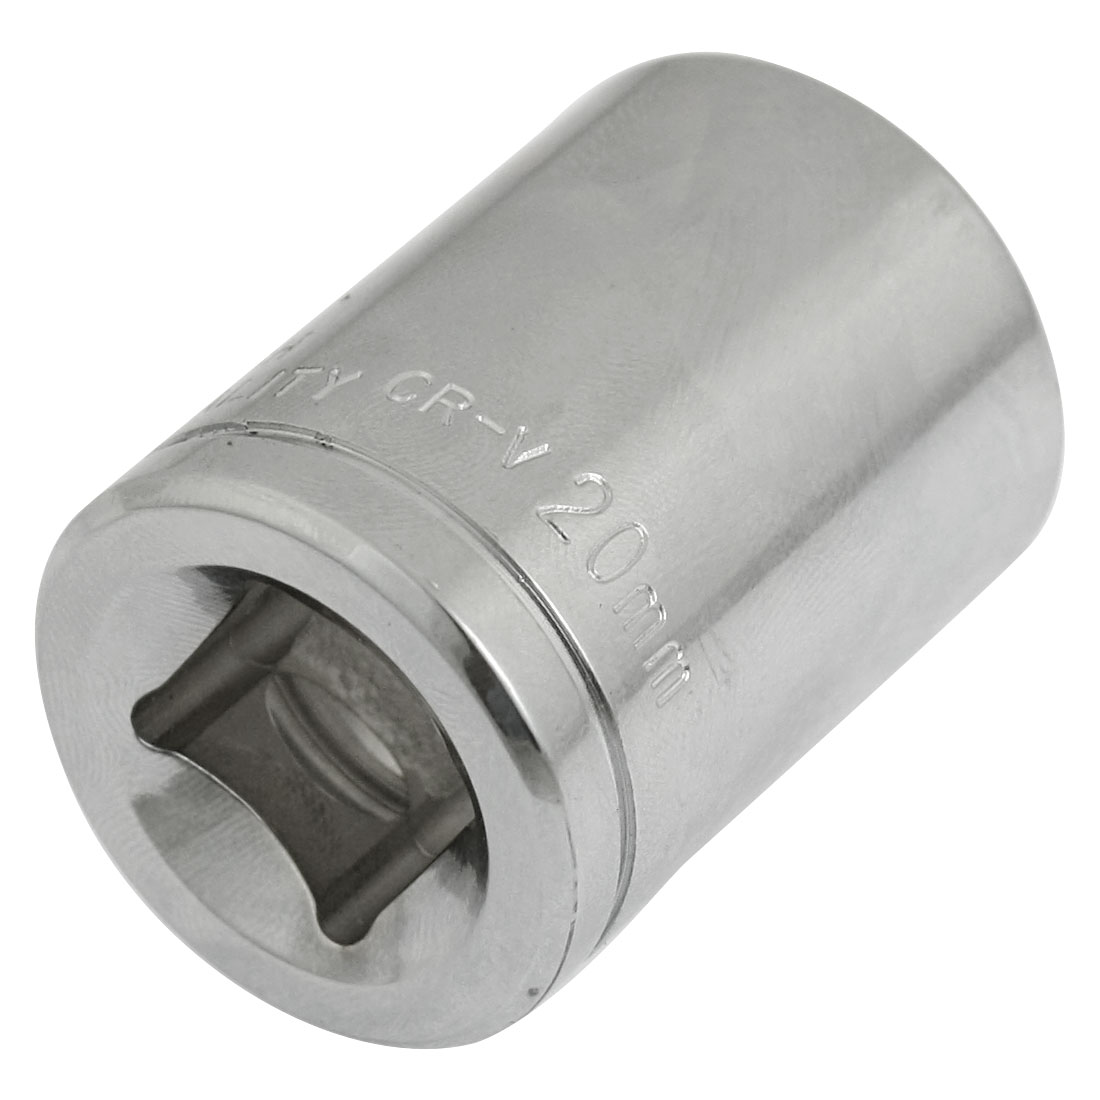 "Chrome-vanadium Steel Standard 1/2"" Drive 20mm 6 Point Axle Nut Socket"